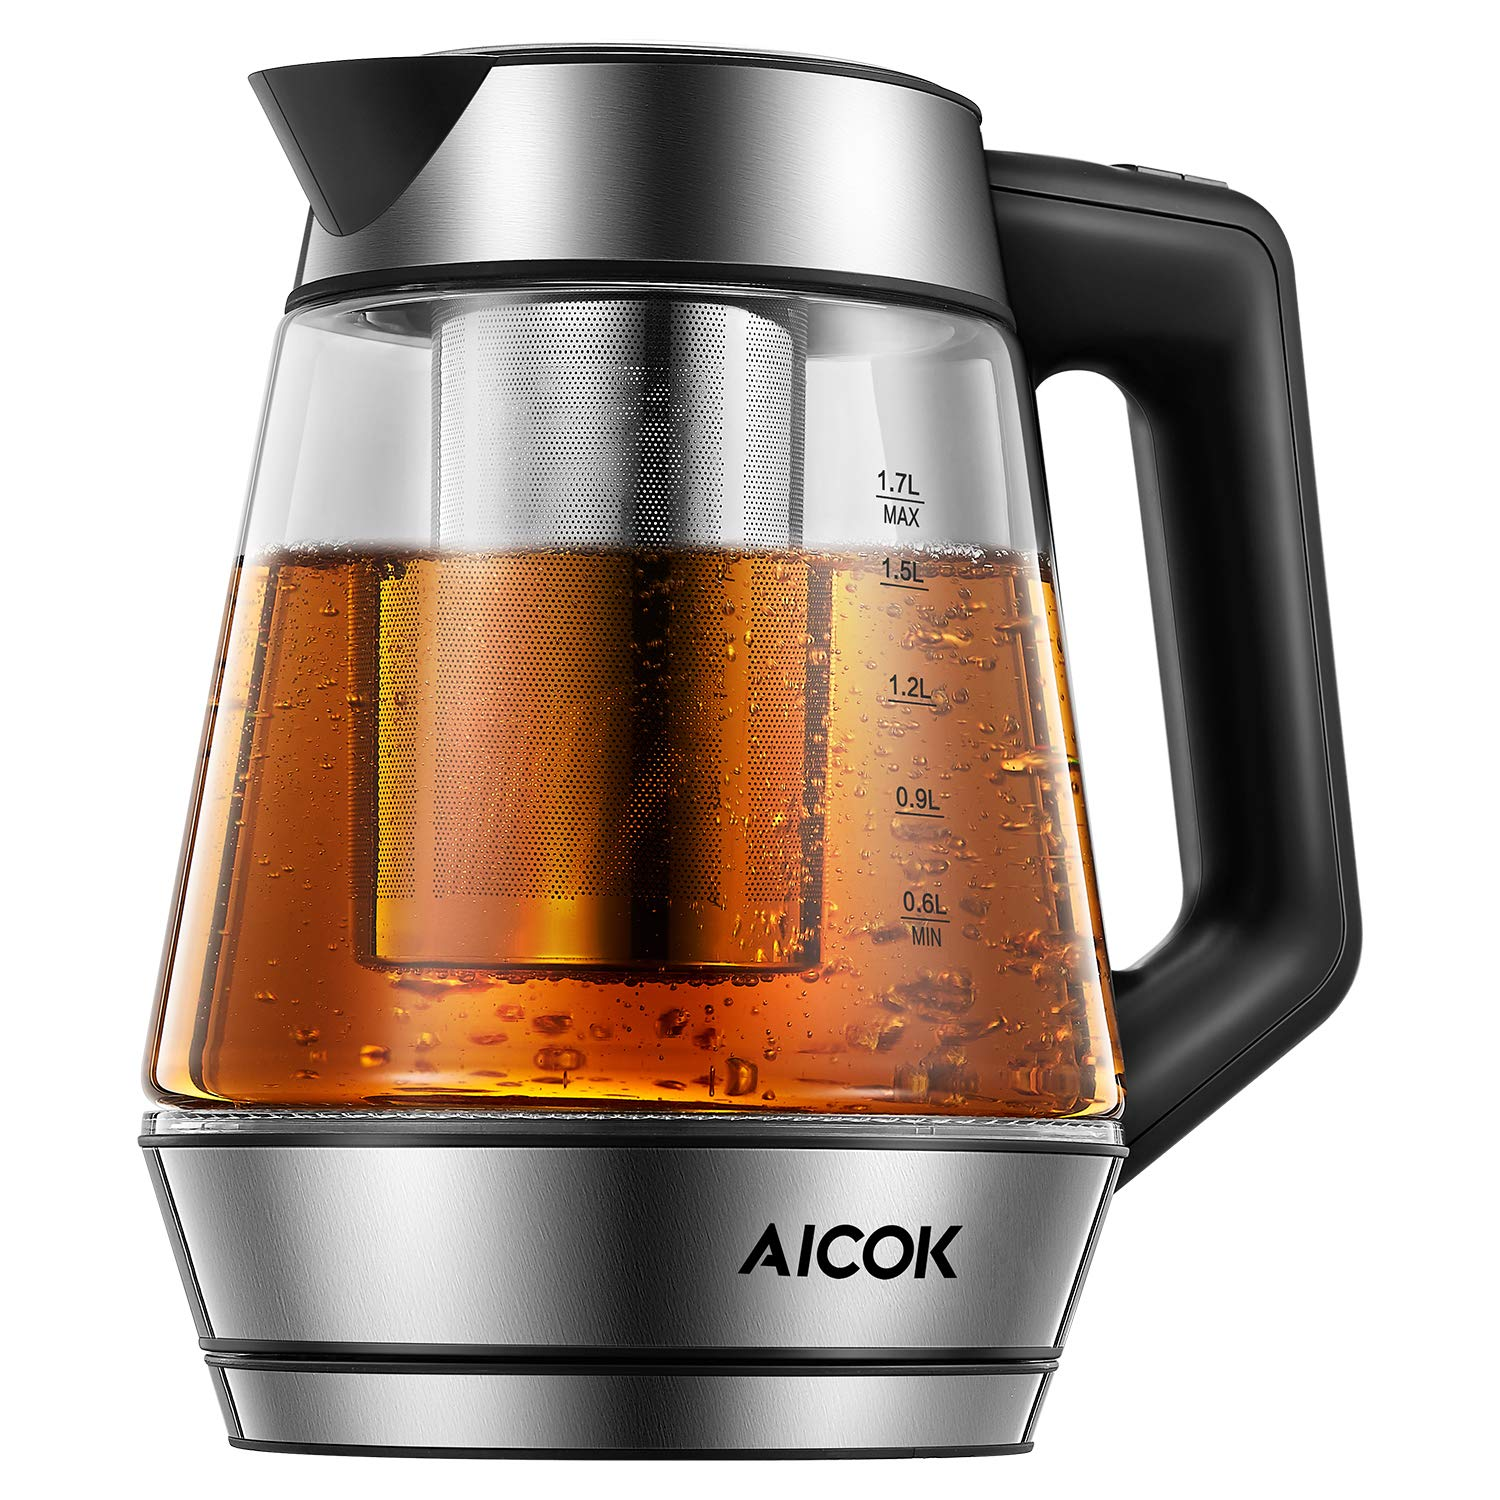 Aicok Multi purpose electric kettle